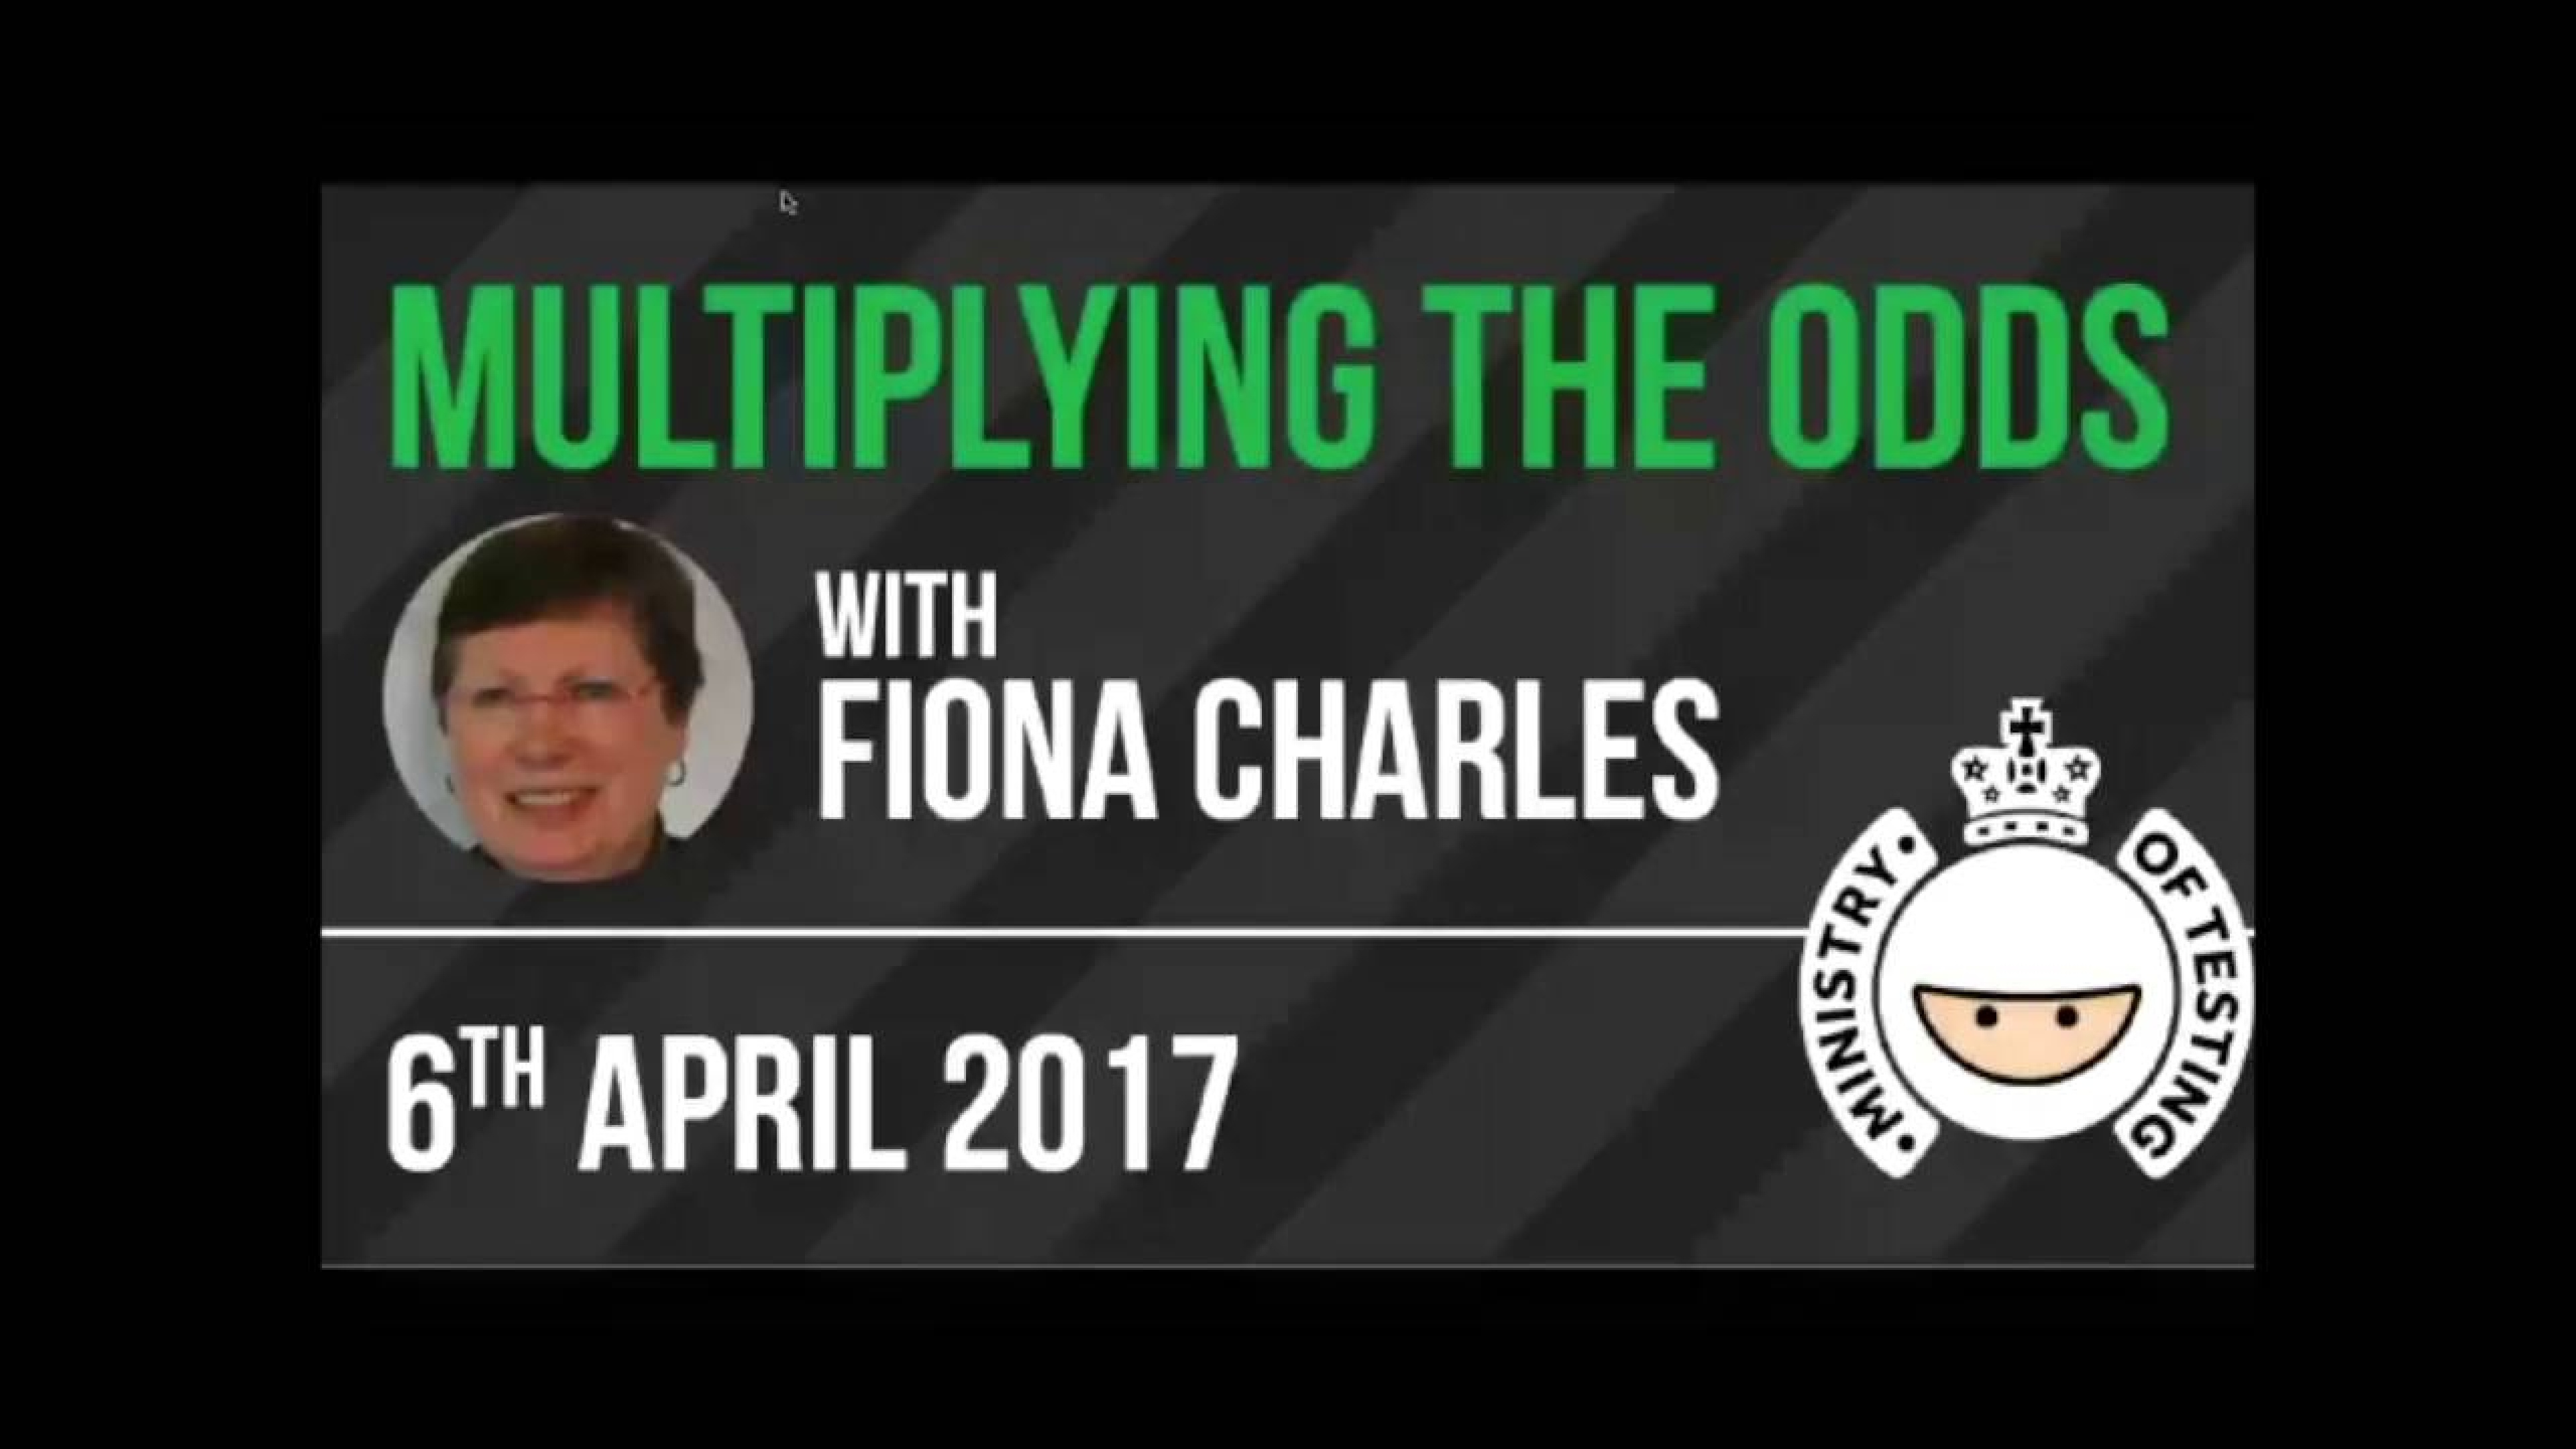 Multiplying the Odds with Fiona Charles